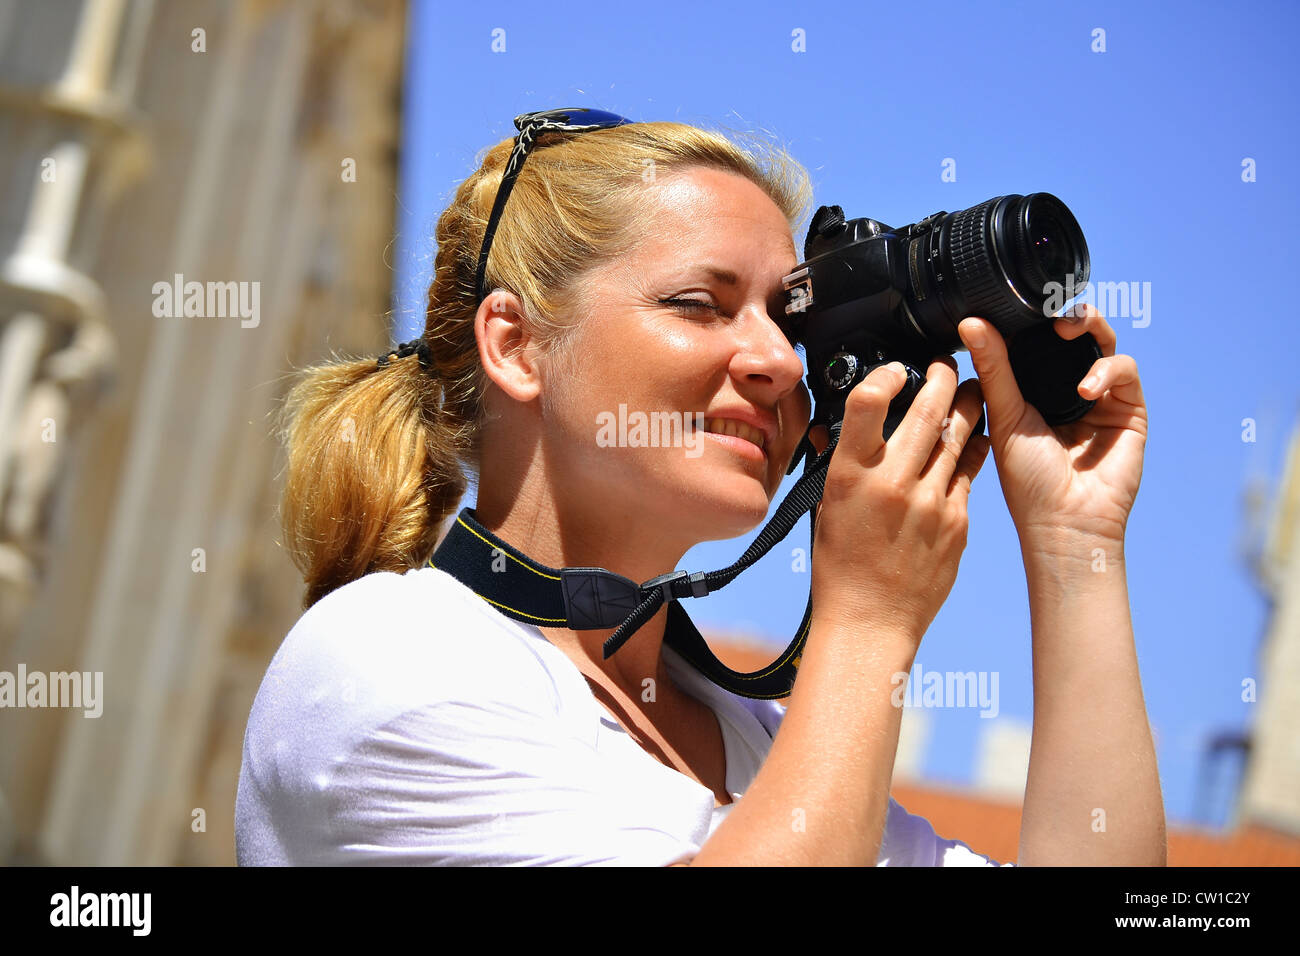 Young female tourist visiting Mediterranean old town on vacation. Woman taking photos on the street - Stock Image